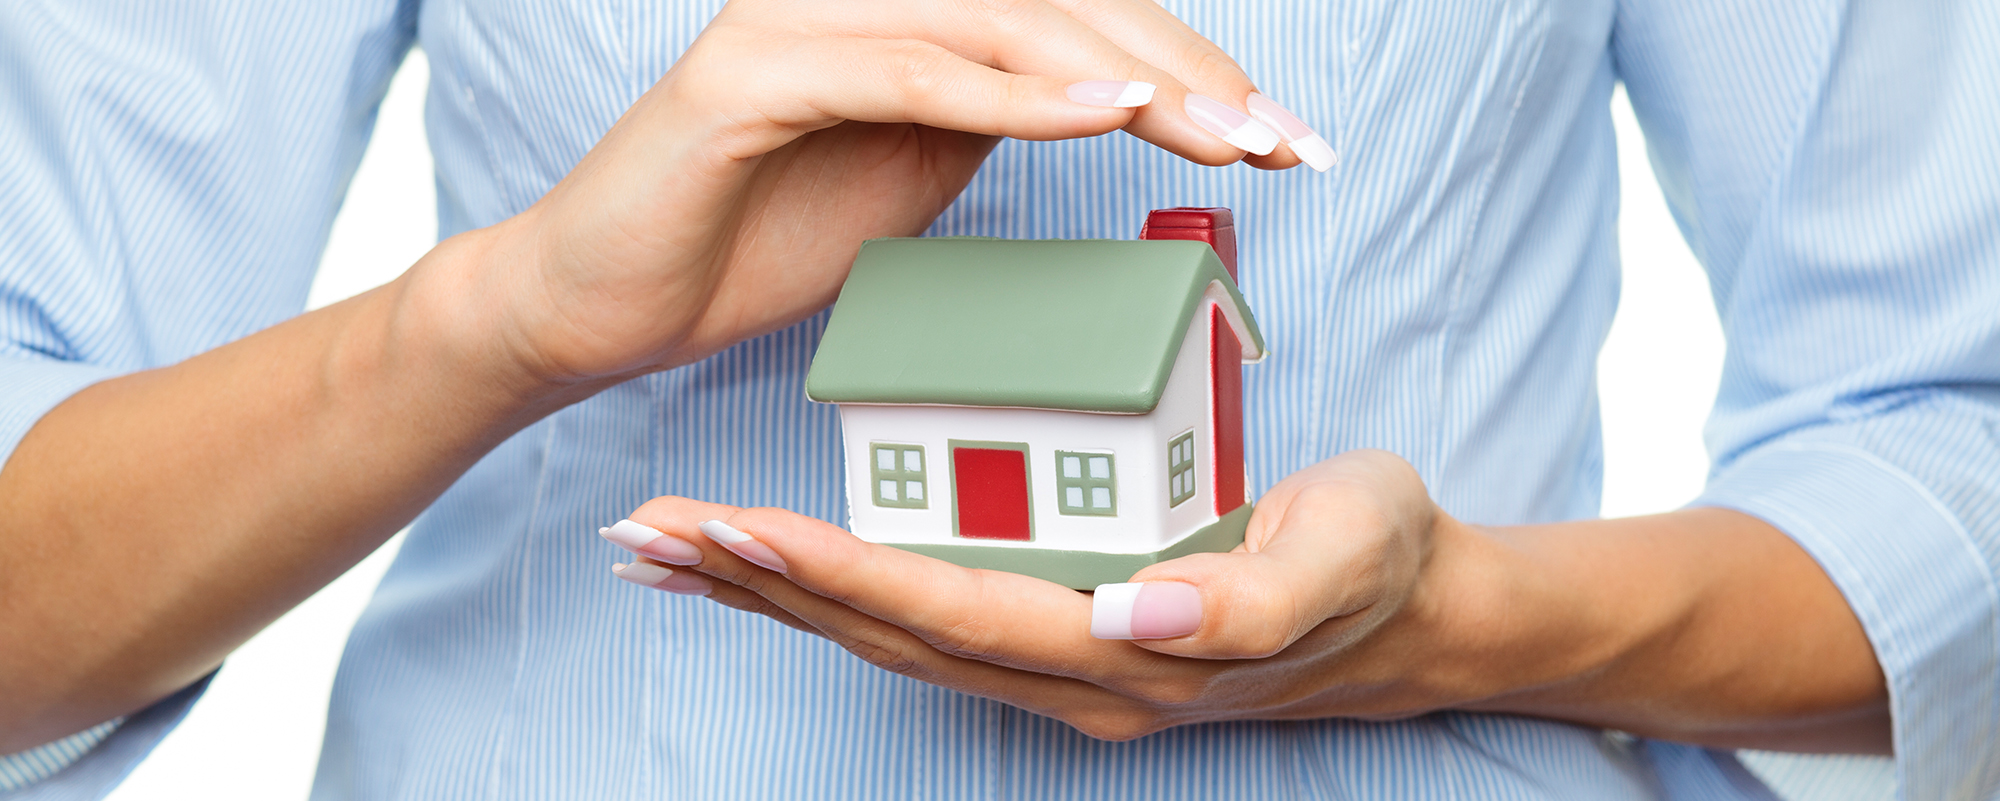 your property is safe in your hands - SingSaver